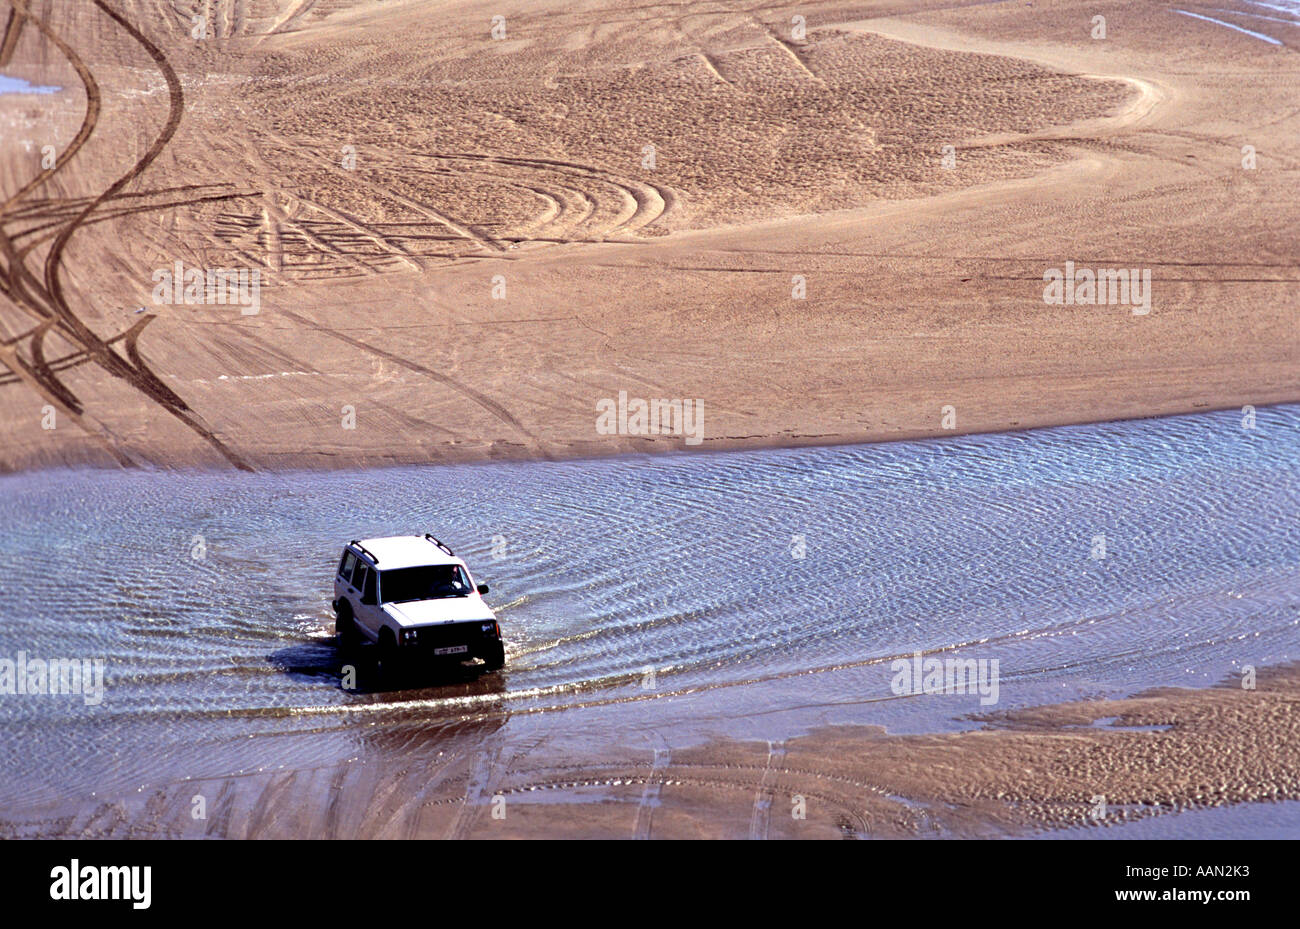 A off road vehicle nr the Inland sea Khor al Udeid in the south of Qatar, south of Doha.  In the Arabian Gulf Middle East - Stock Image